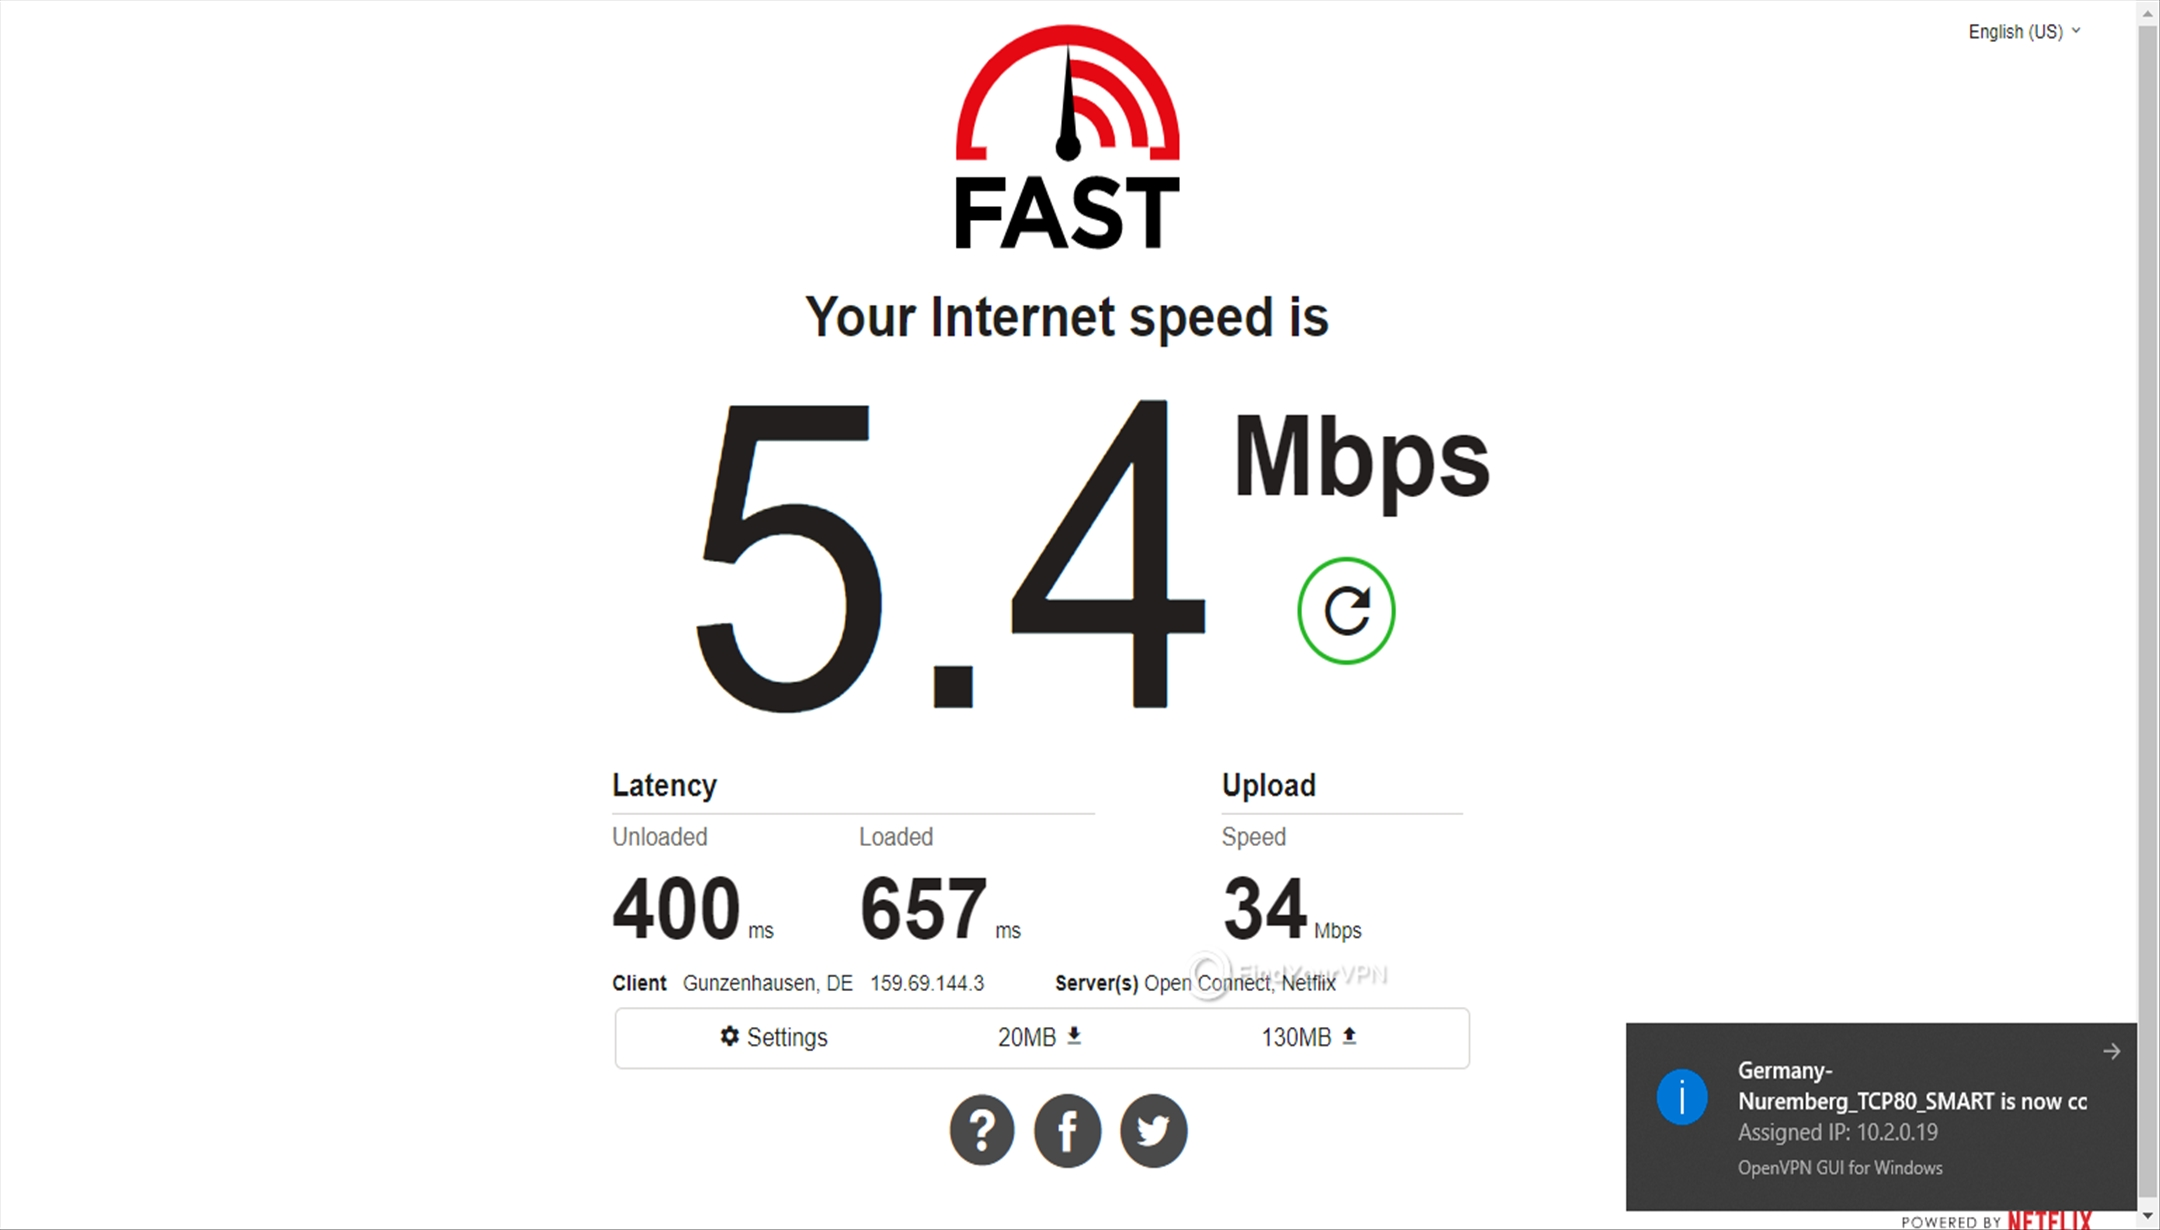 Getflix Germany 5.4 Mbps speed